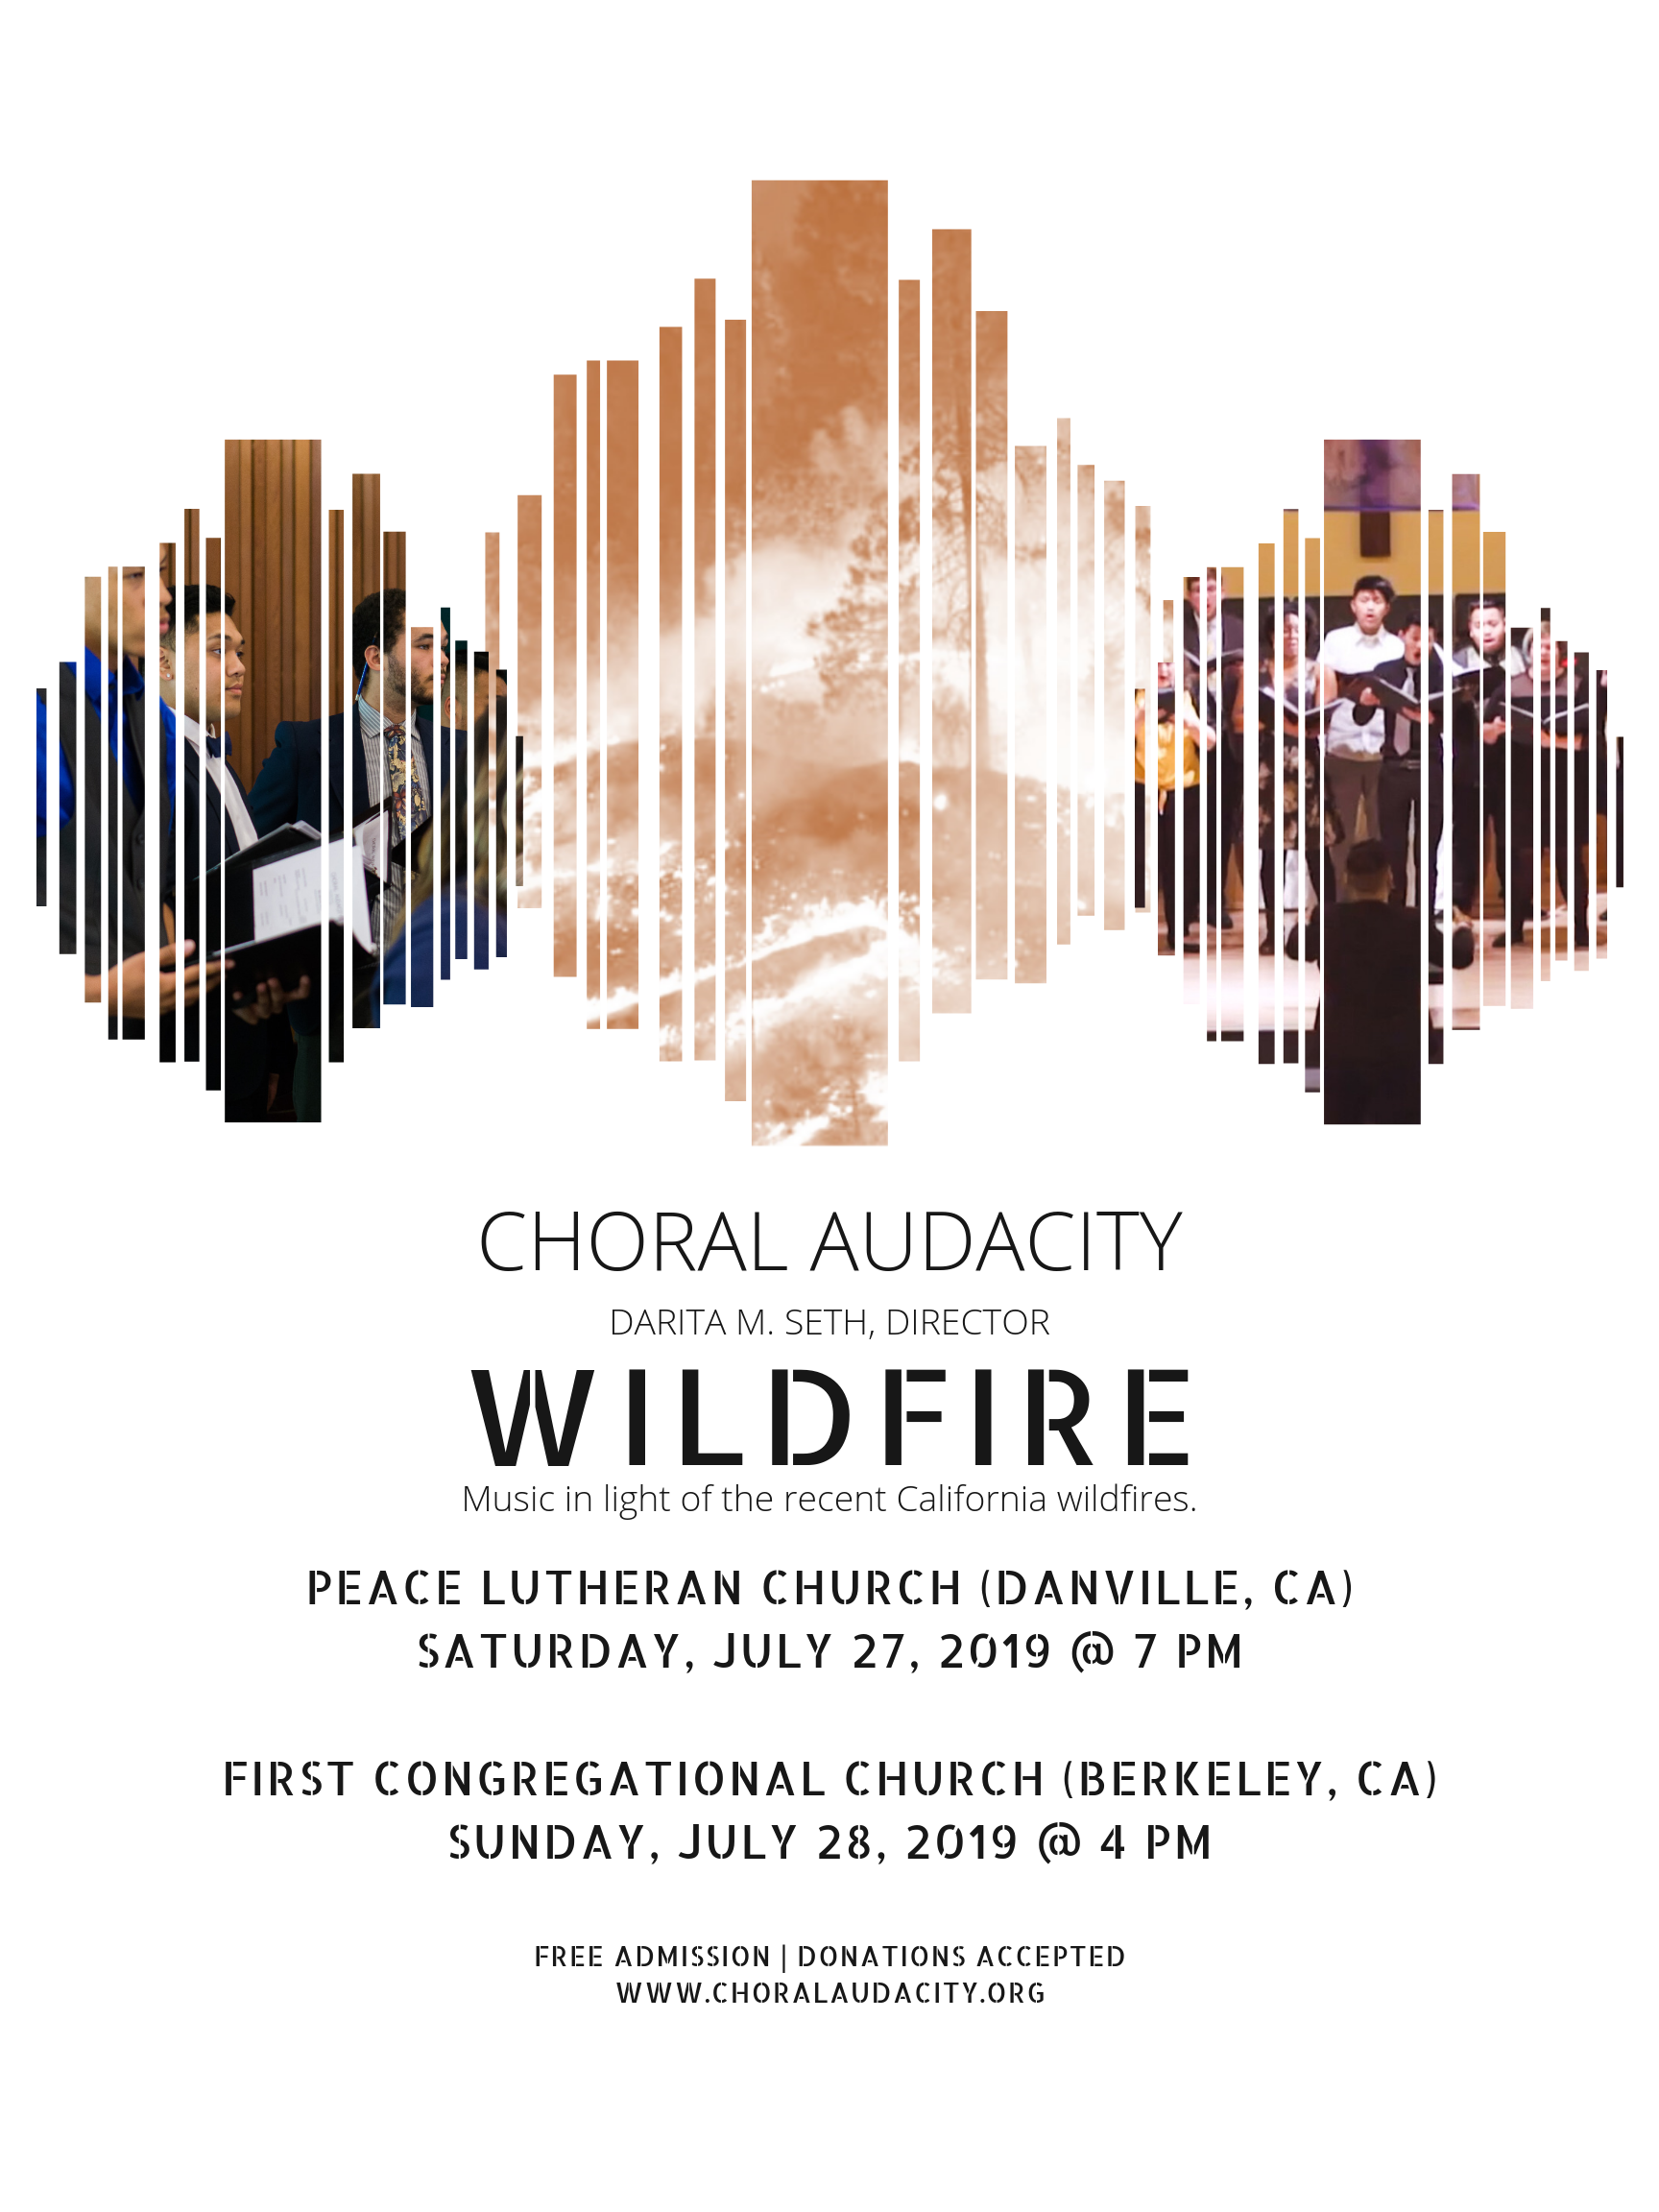 Peace Lutheran Church | Community And Spirituality in Danville CA